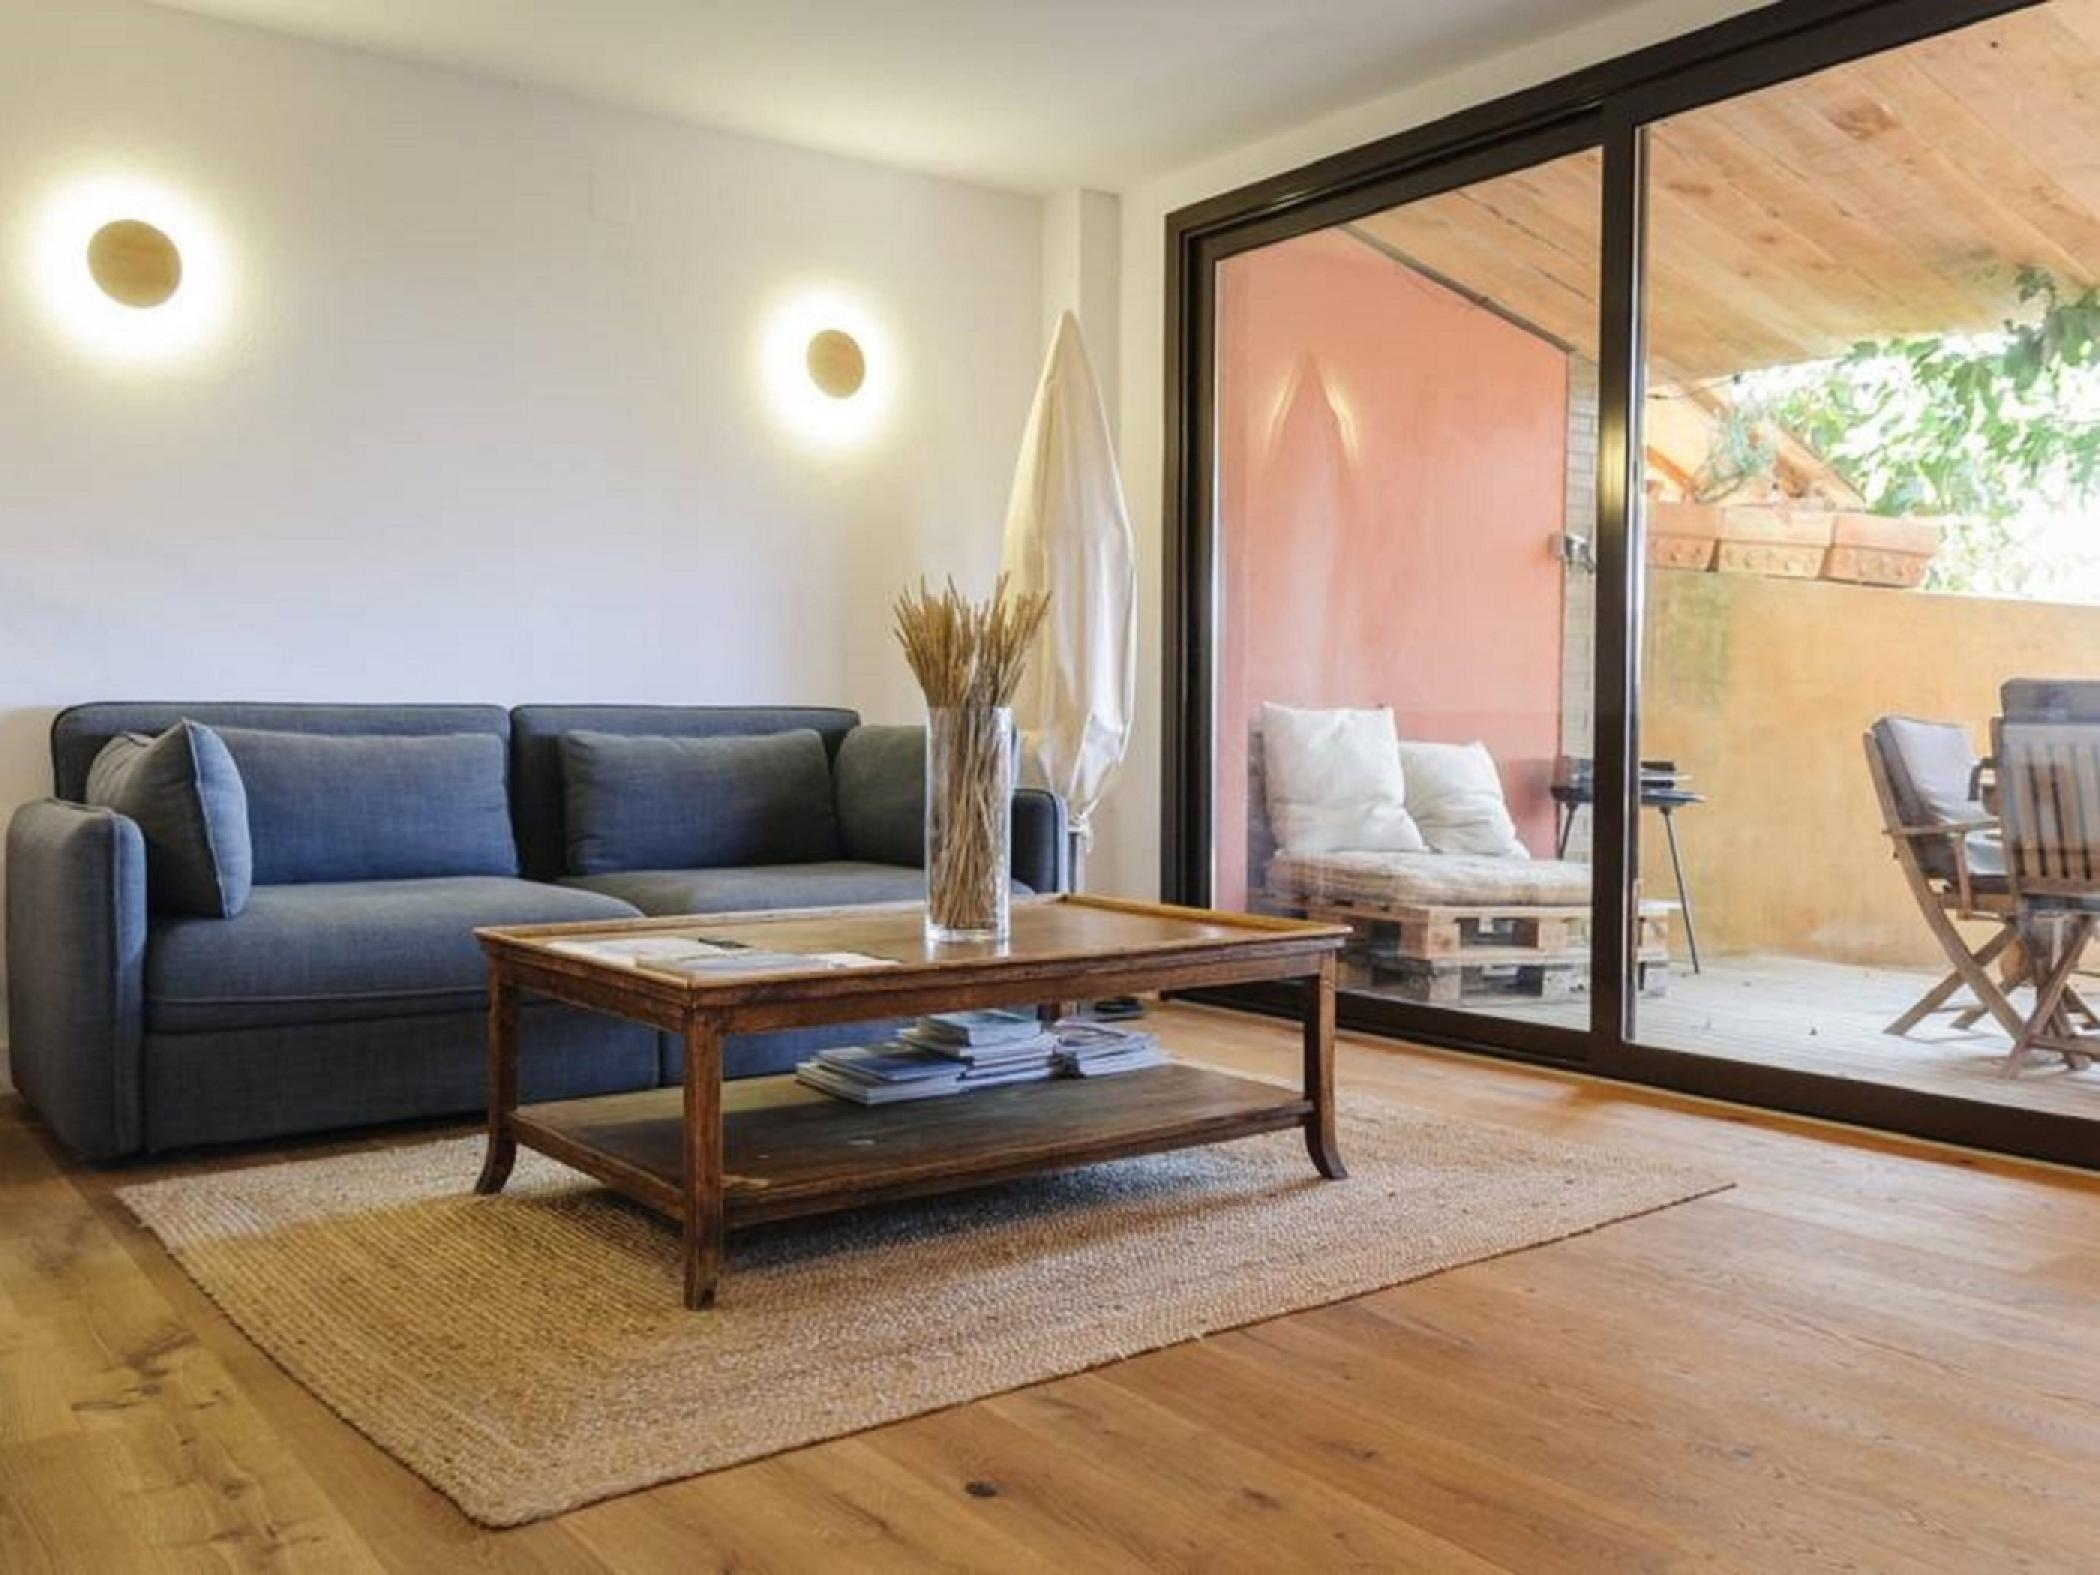 Living room and dining room. Terrace views - Rent apartment in Sant Jordi Desvalls, Diana, Girona